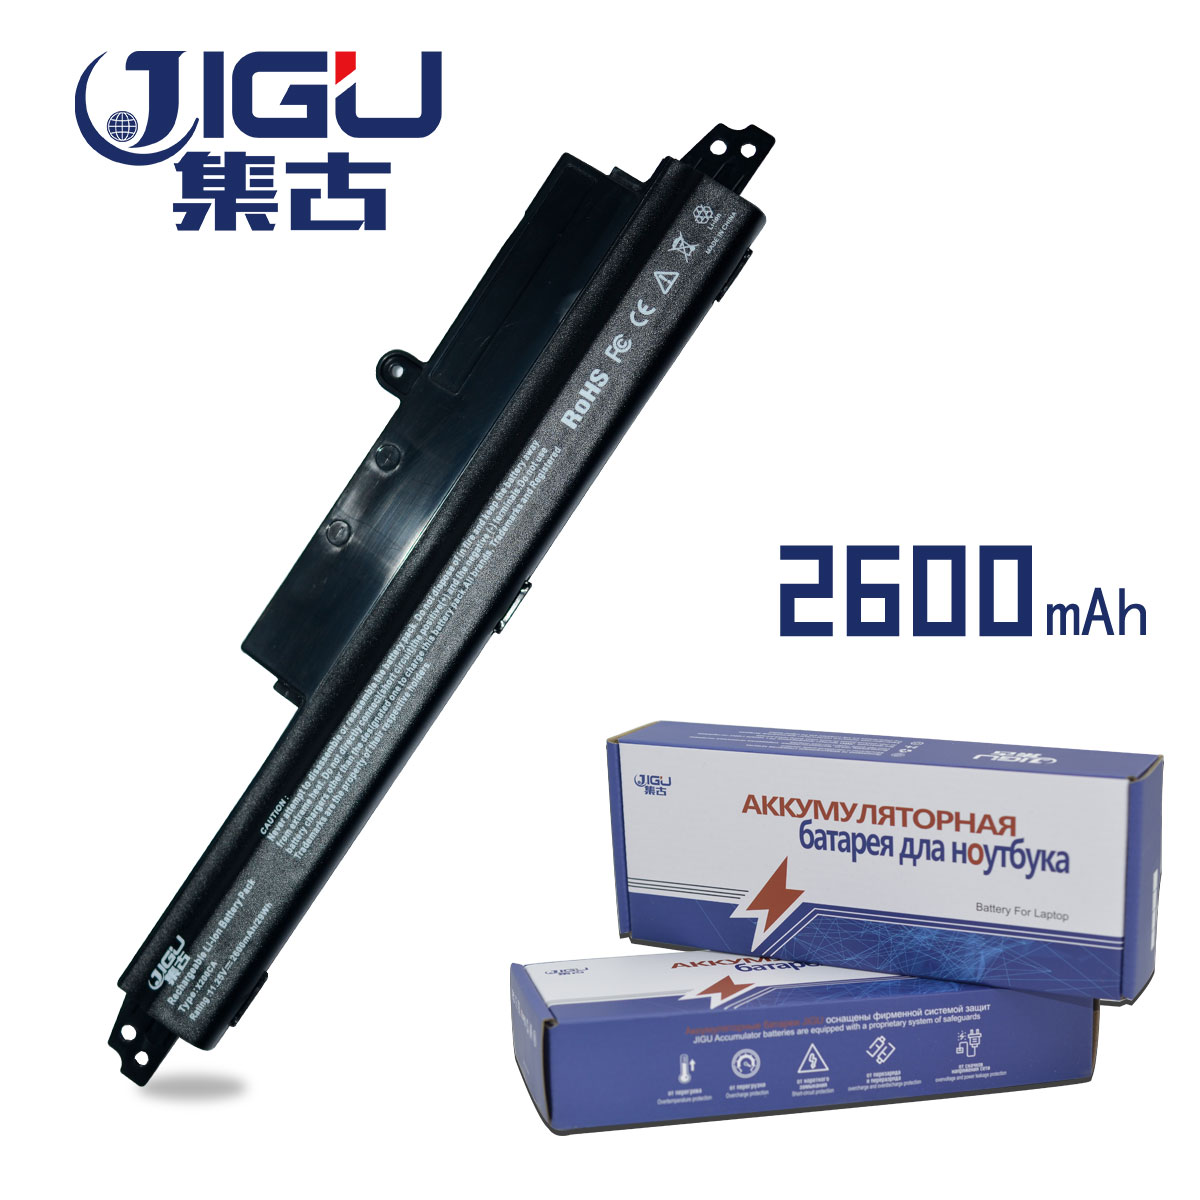 JIGU Laptop Battery A31LMH2 A31N1302 Battery For ASUS For VivoBook X200CA X200MA X200M X200LA F200CA 200CA 11.6 A31LMH2 A31LM9H jigu 2600mah laptop battery a31lmh2 a31n1302 for asus vivobook f200ca vivobook f200m vivobook f201e kx063h vivobook f200ma